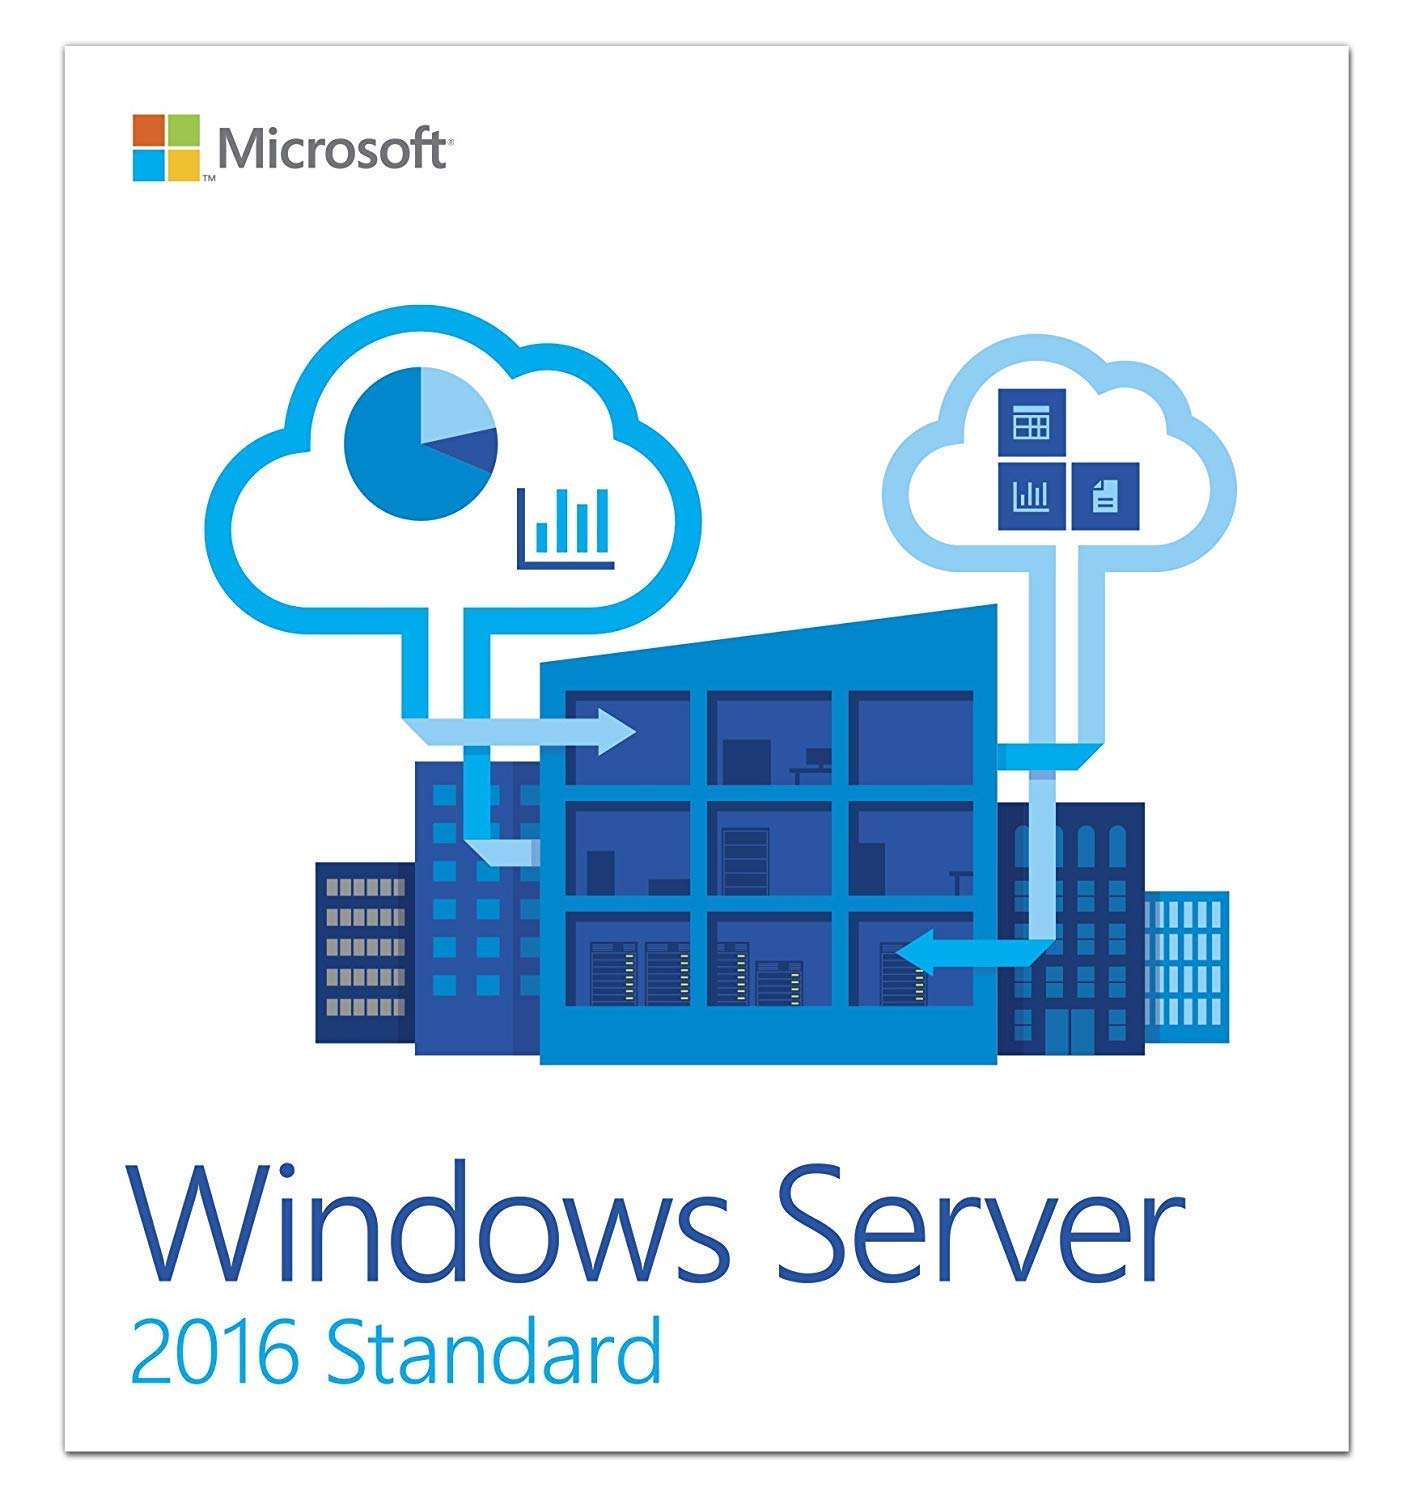 Windows Server 2016 Standard 64 bit 16 Core - Standard OEM - DVD disk - English by Servo Soft